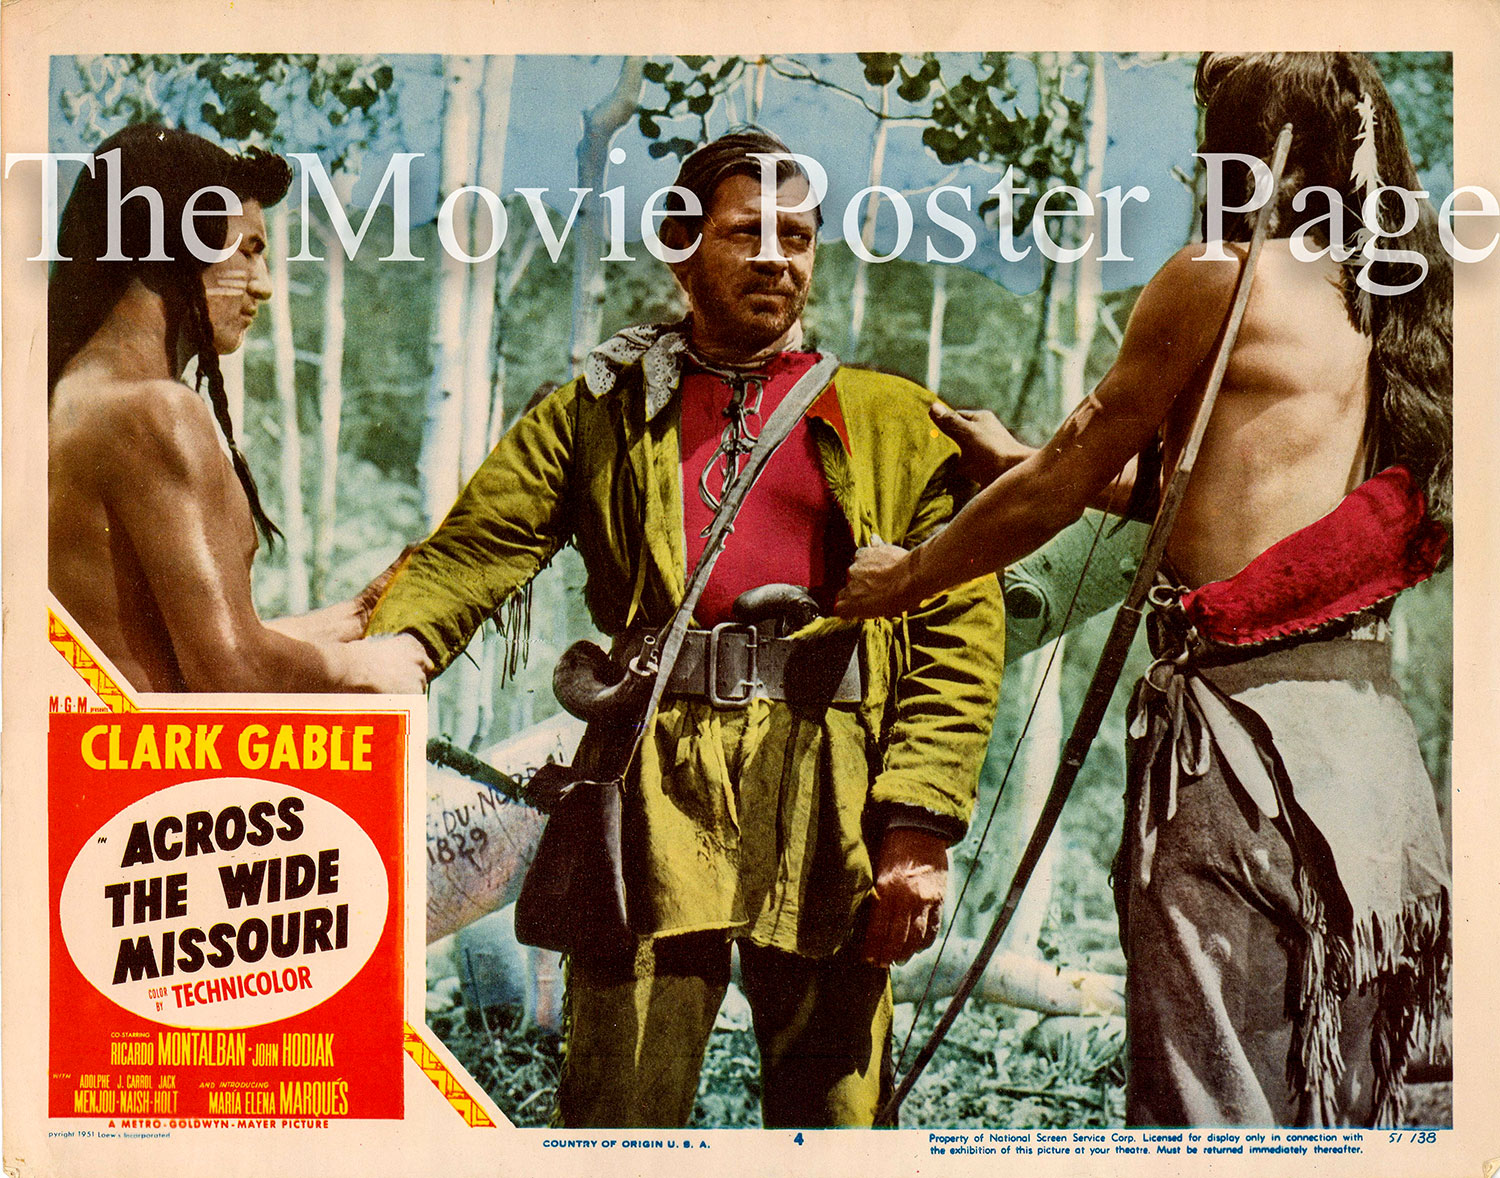 Pictured is a US lobby card promotional poster for the 1951 William A. Wellman film Across the Wide Missouri starring Clark Gable.